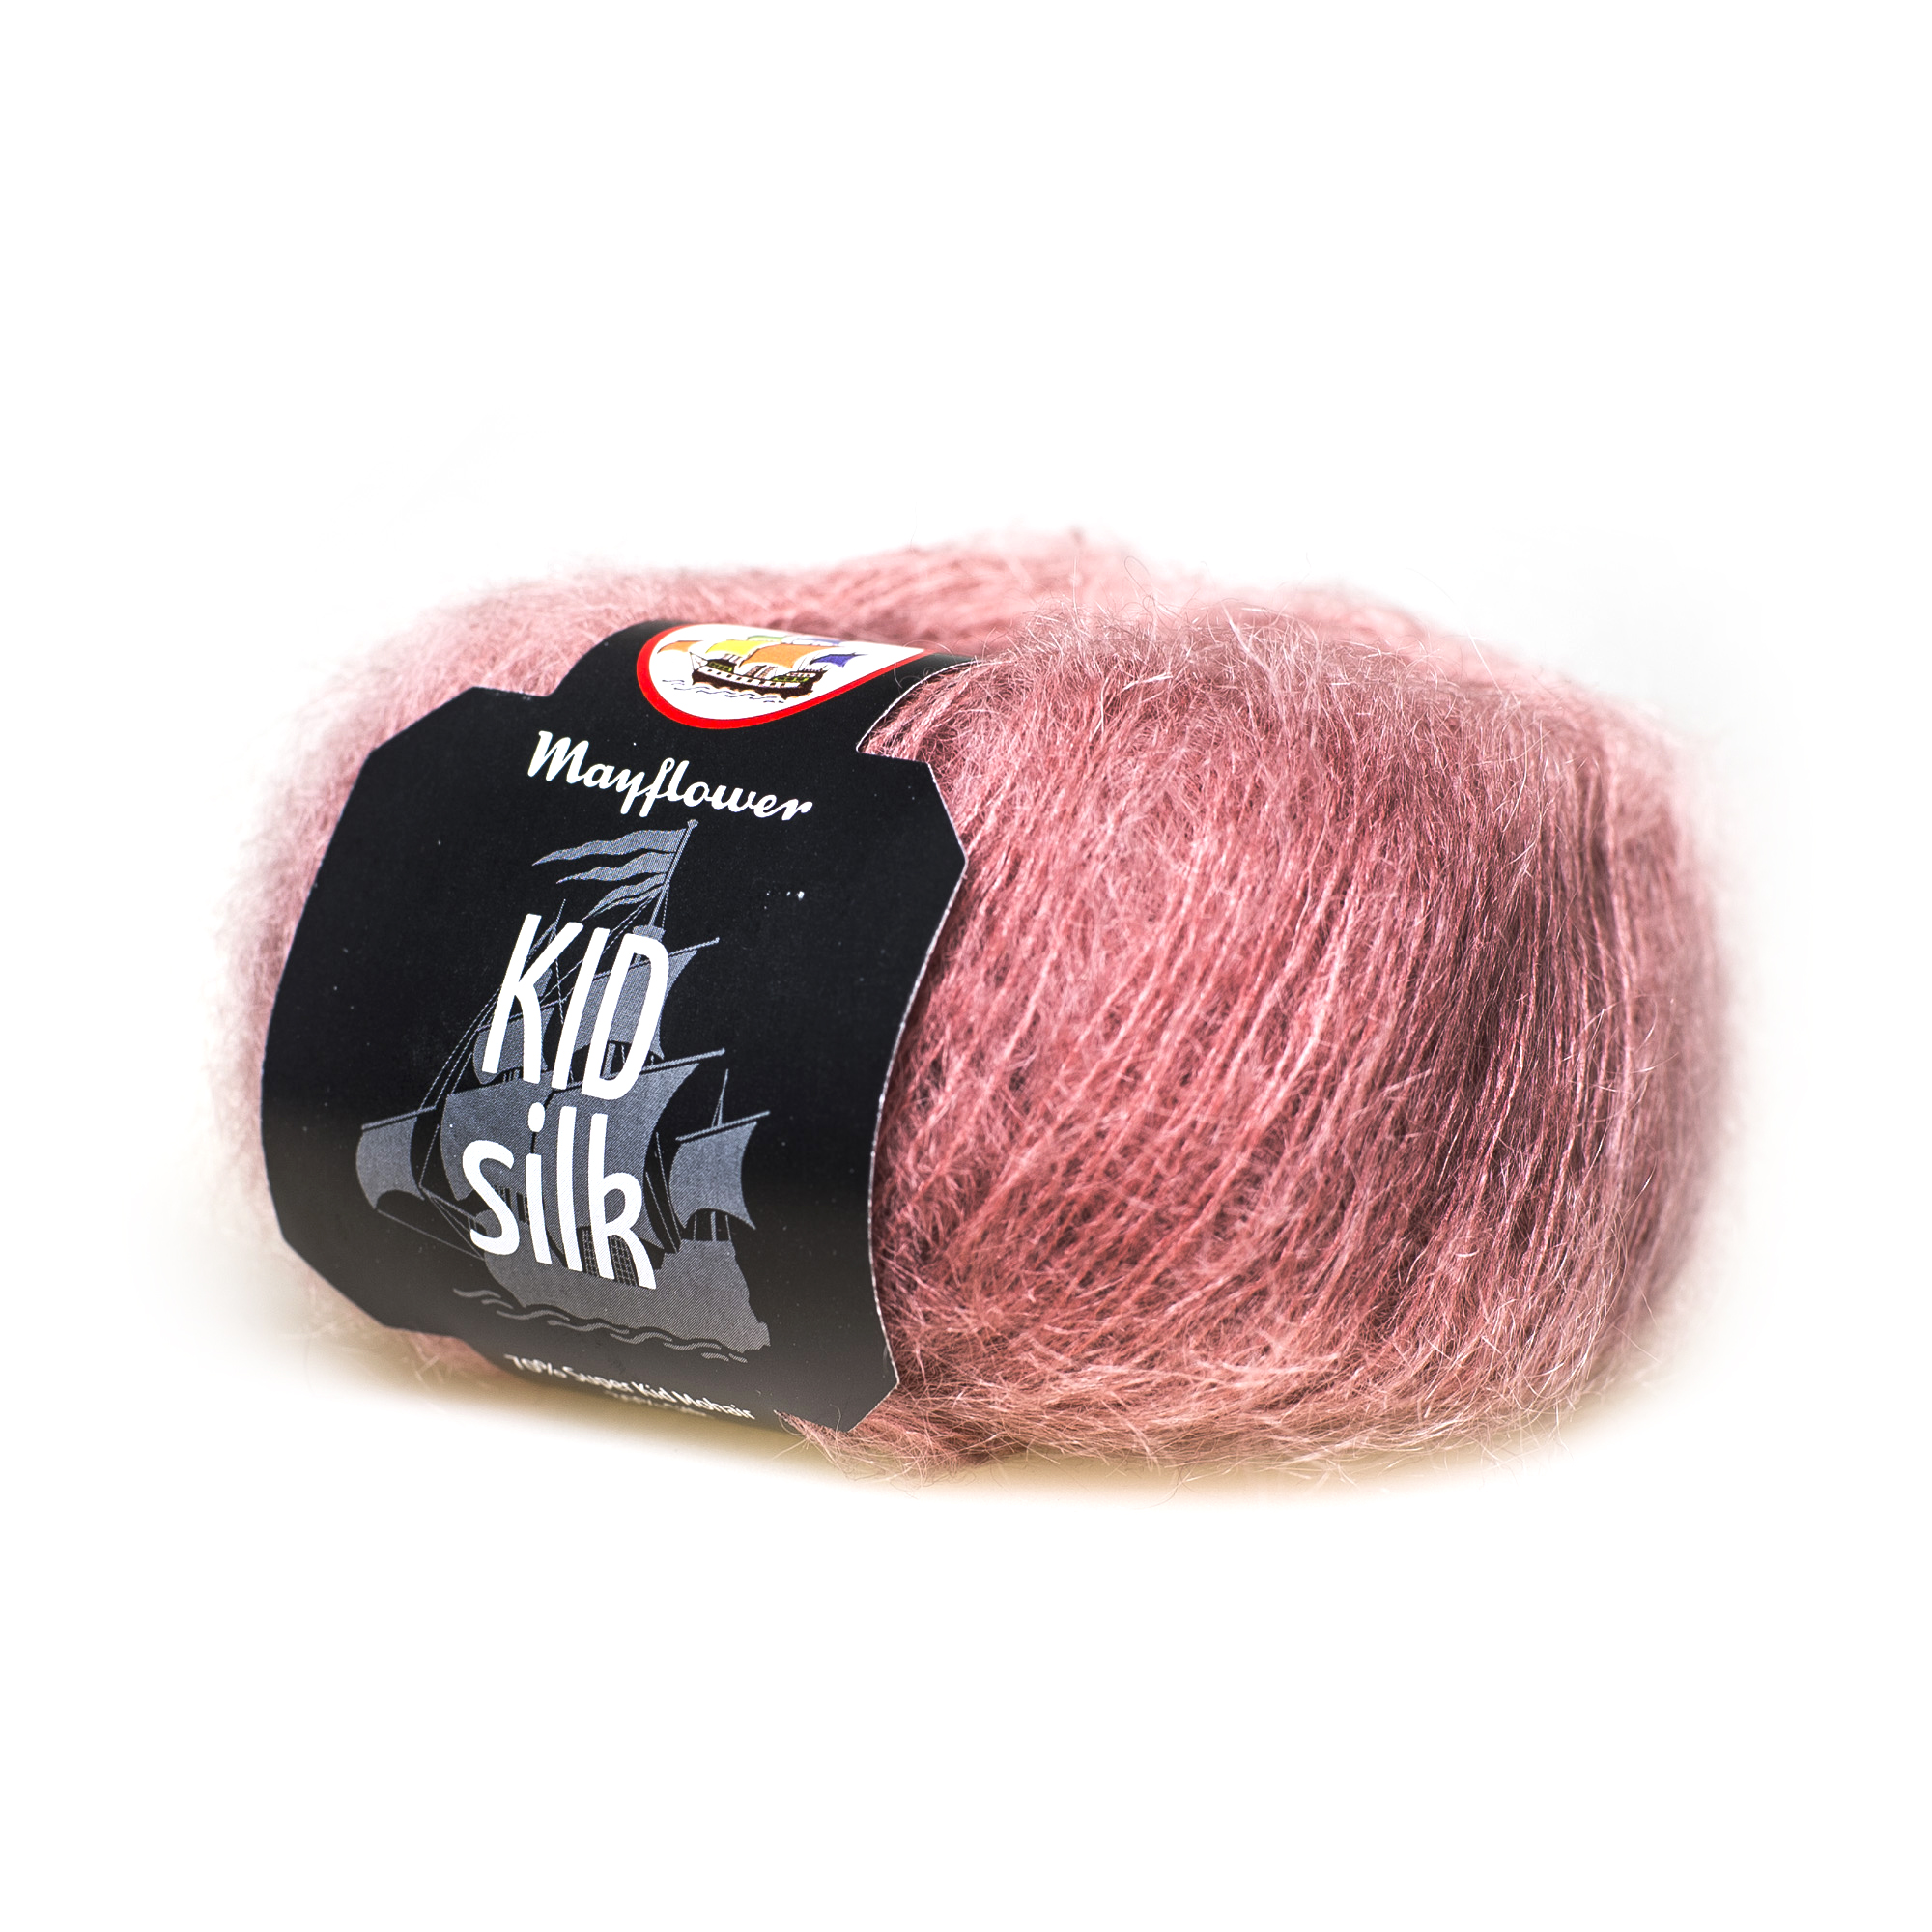 Kid Silk Mohair - Mayflower